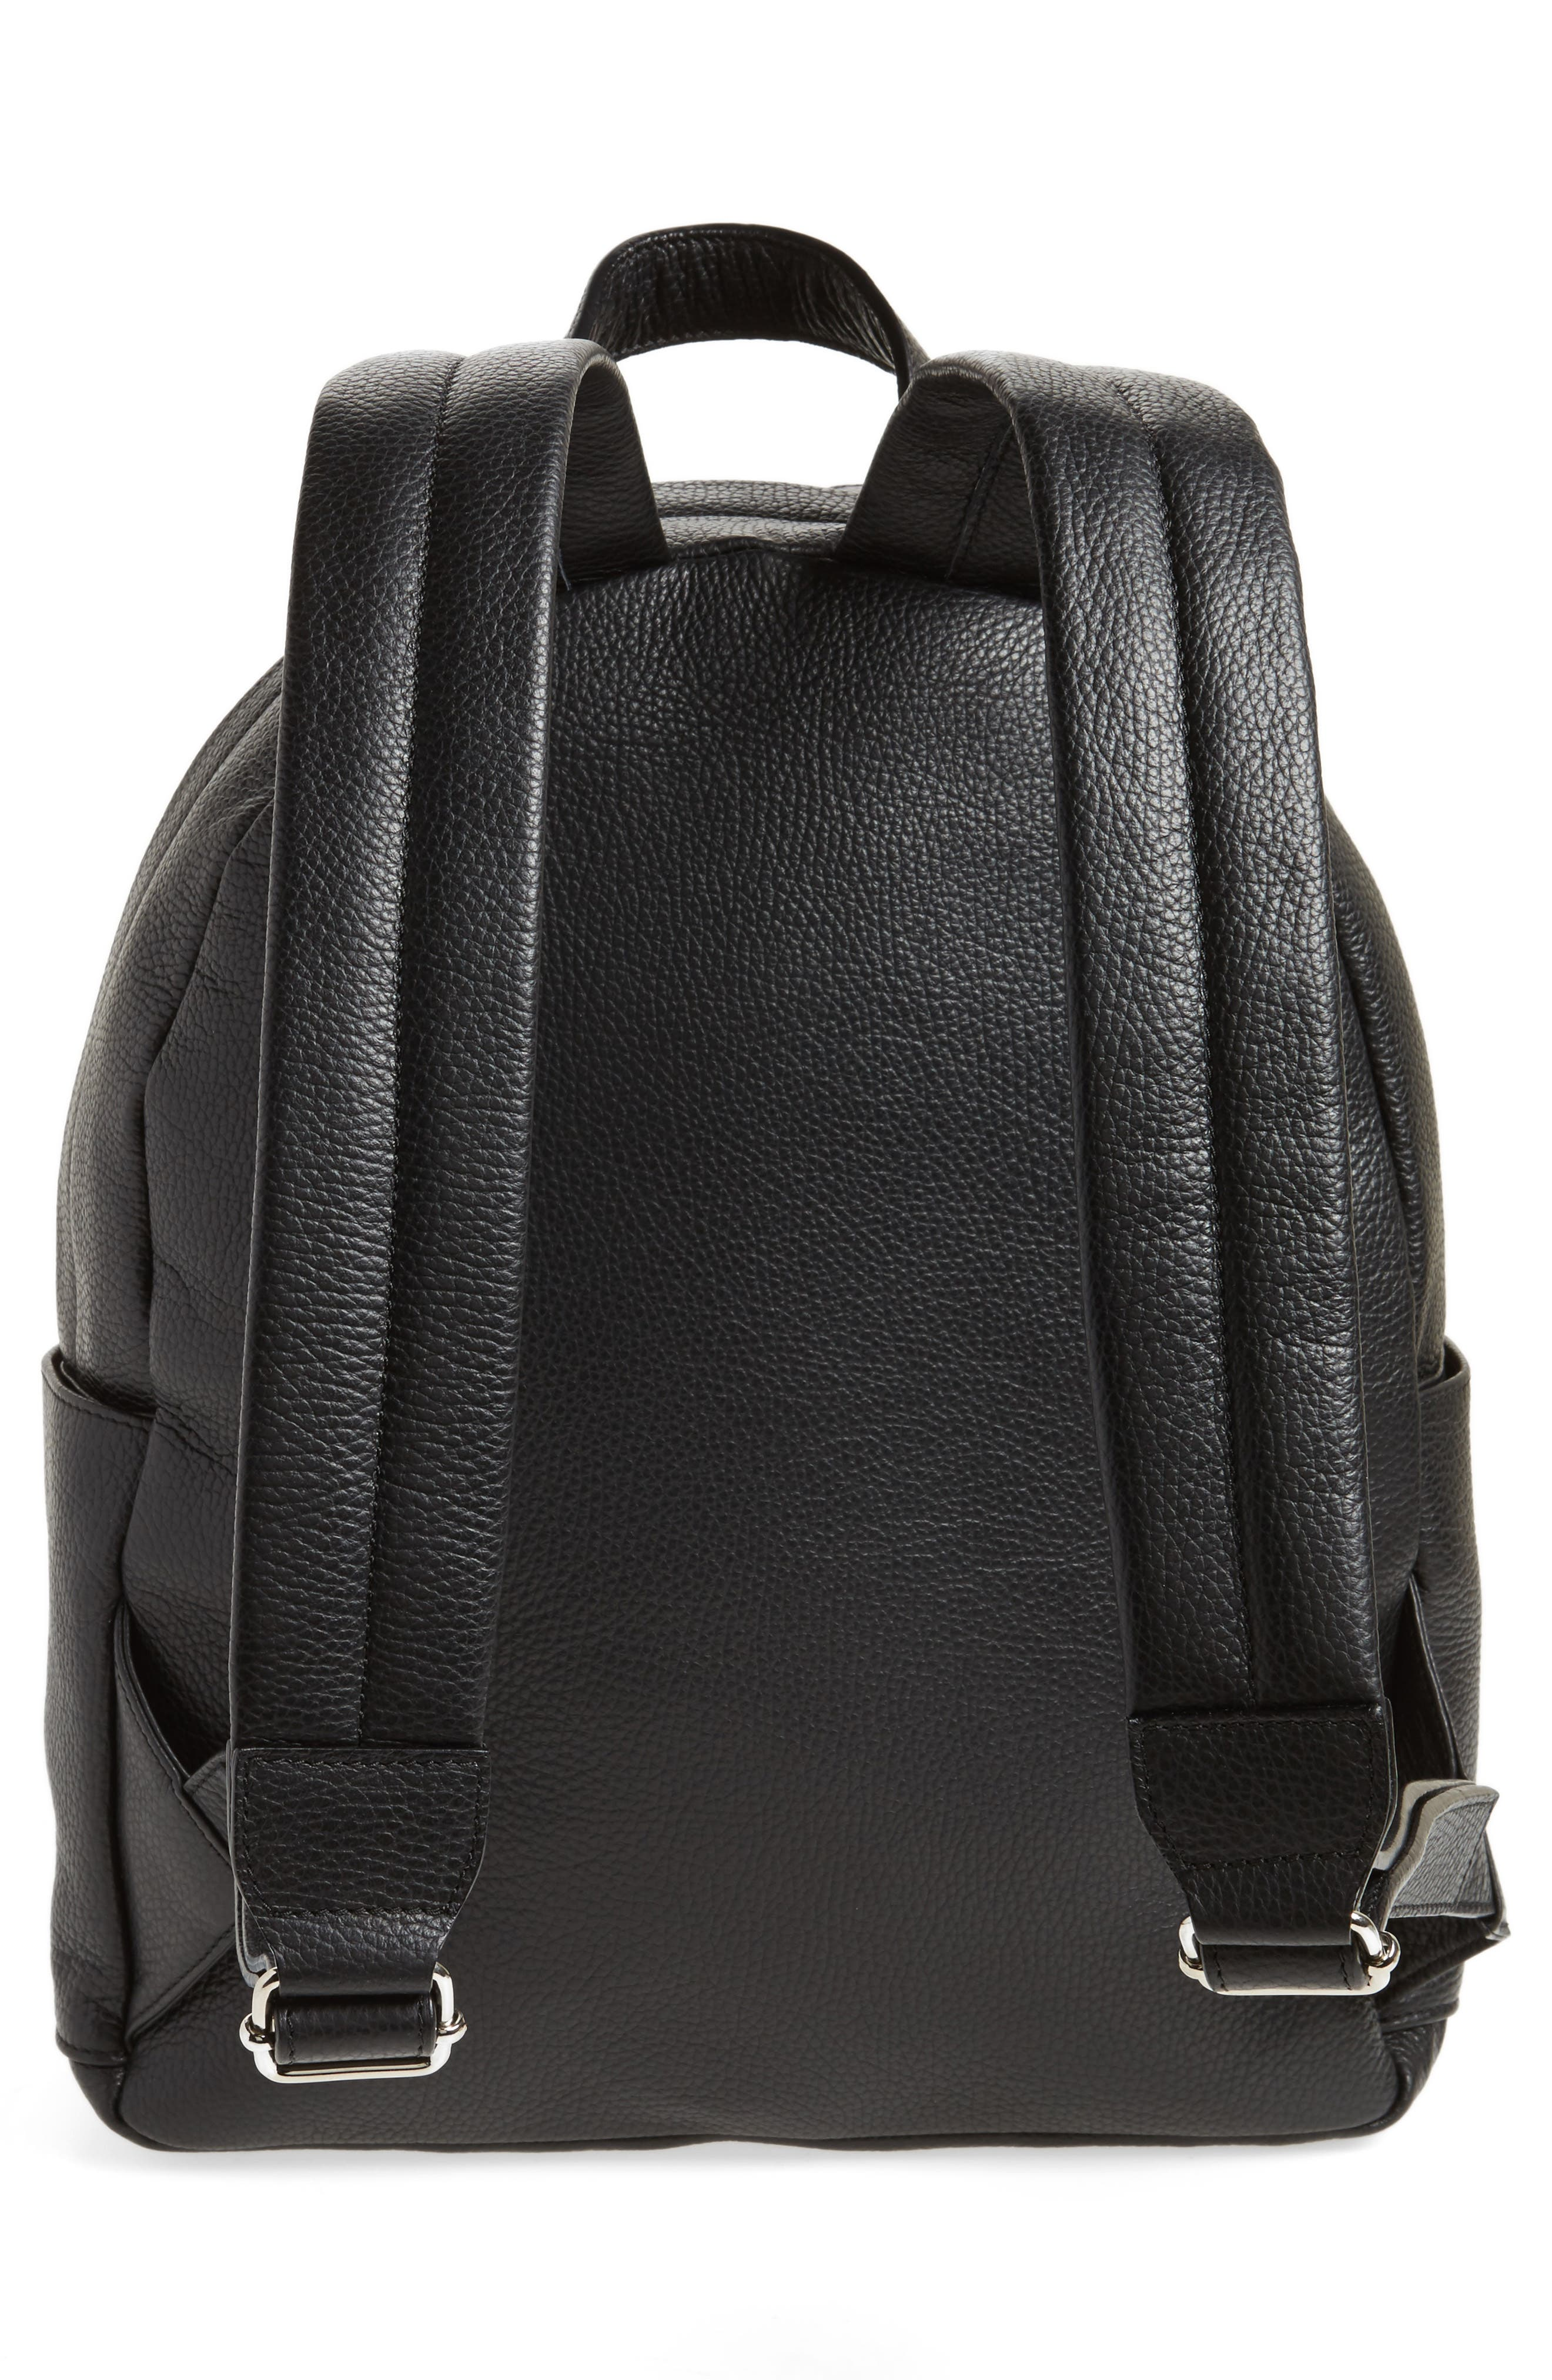 Leather Backpack,                             Alternate thumbnail 3, color,                             Black